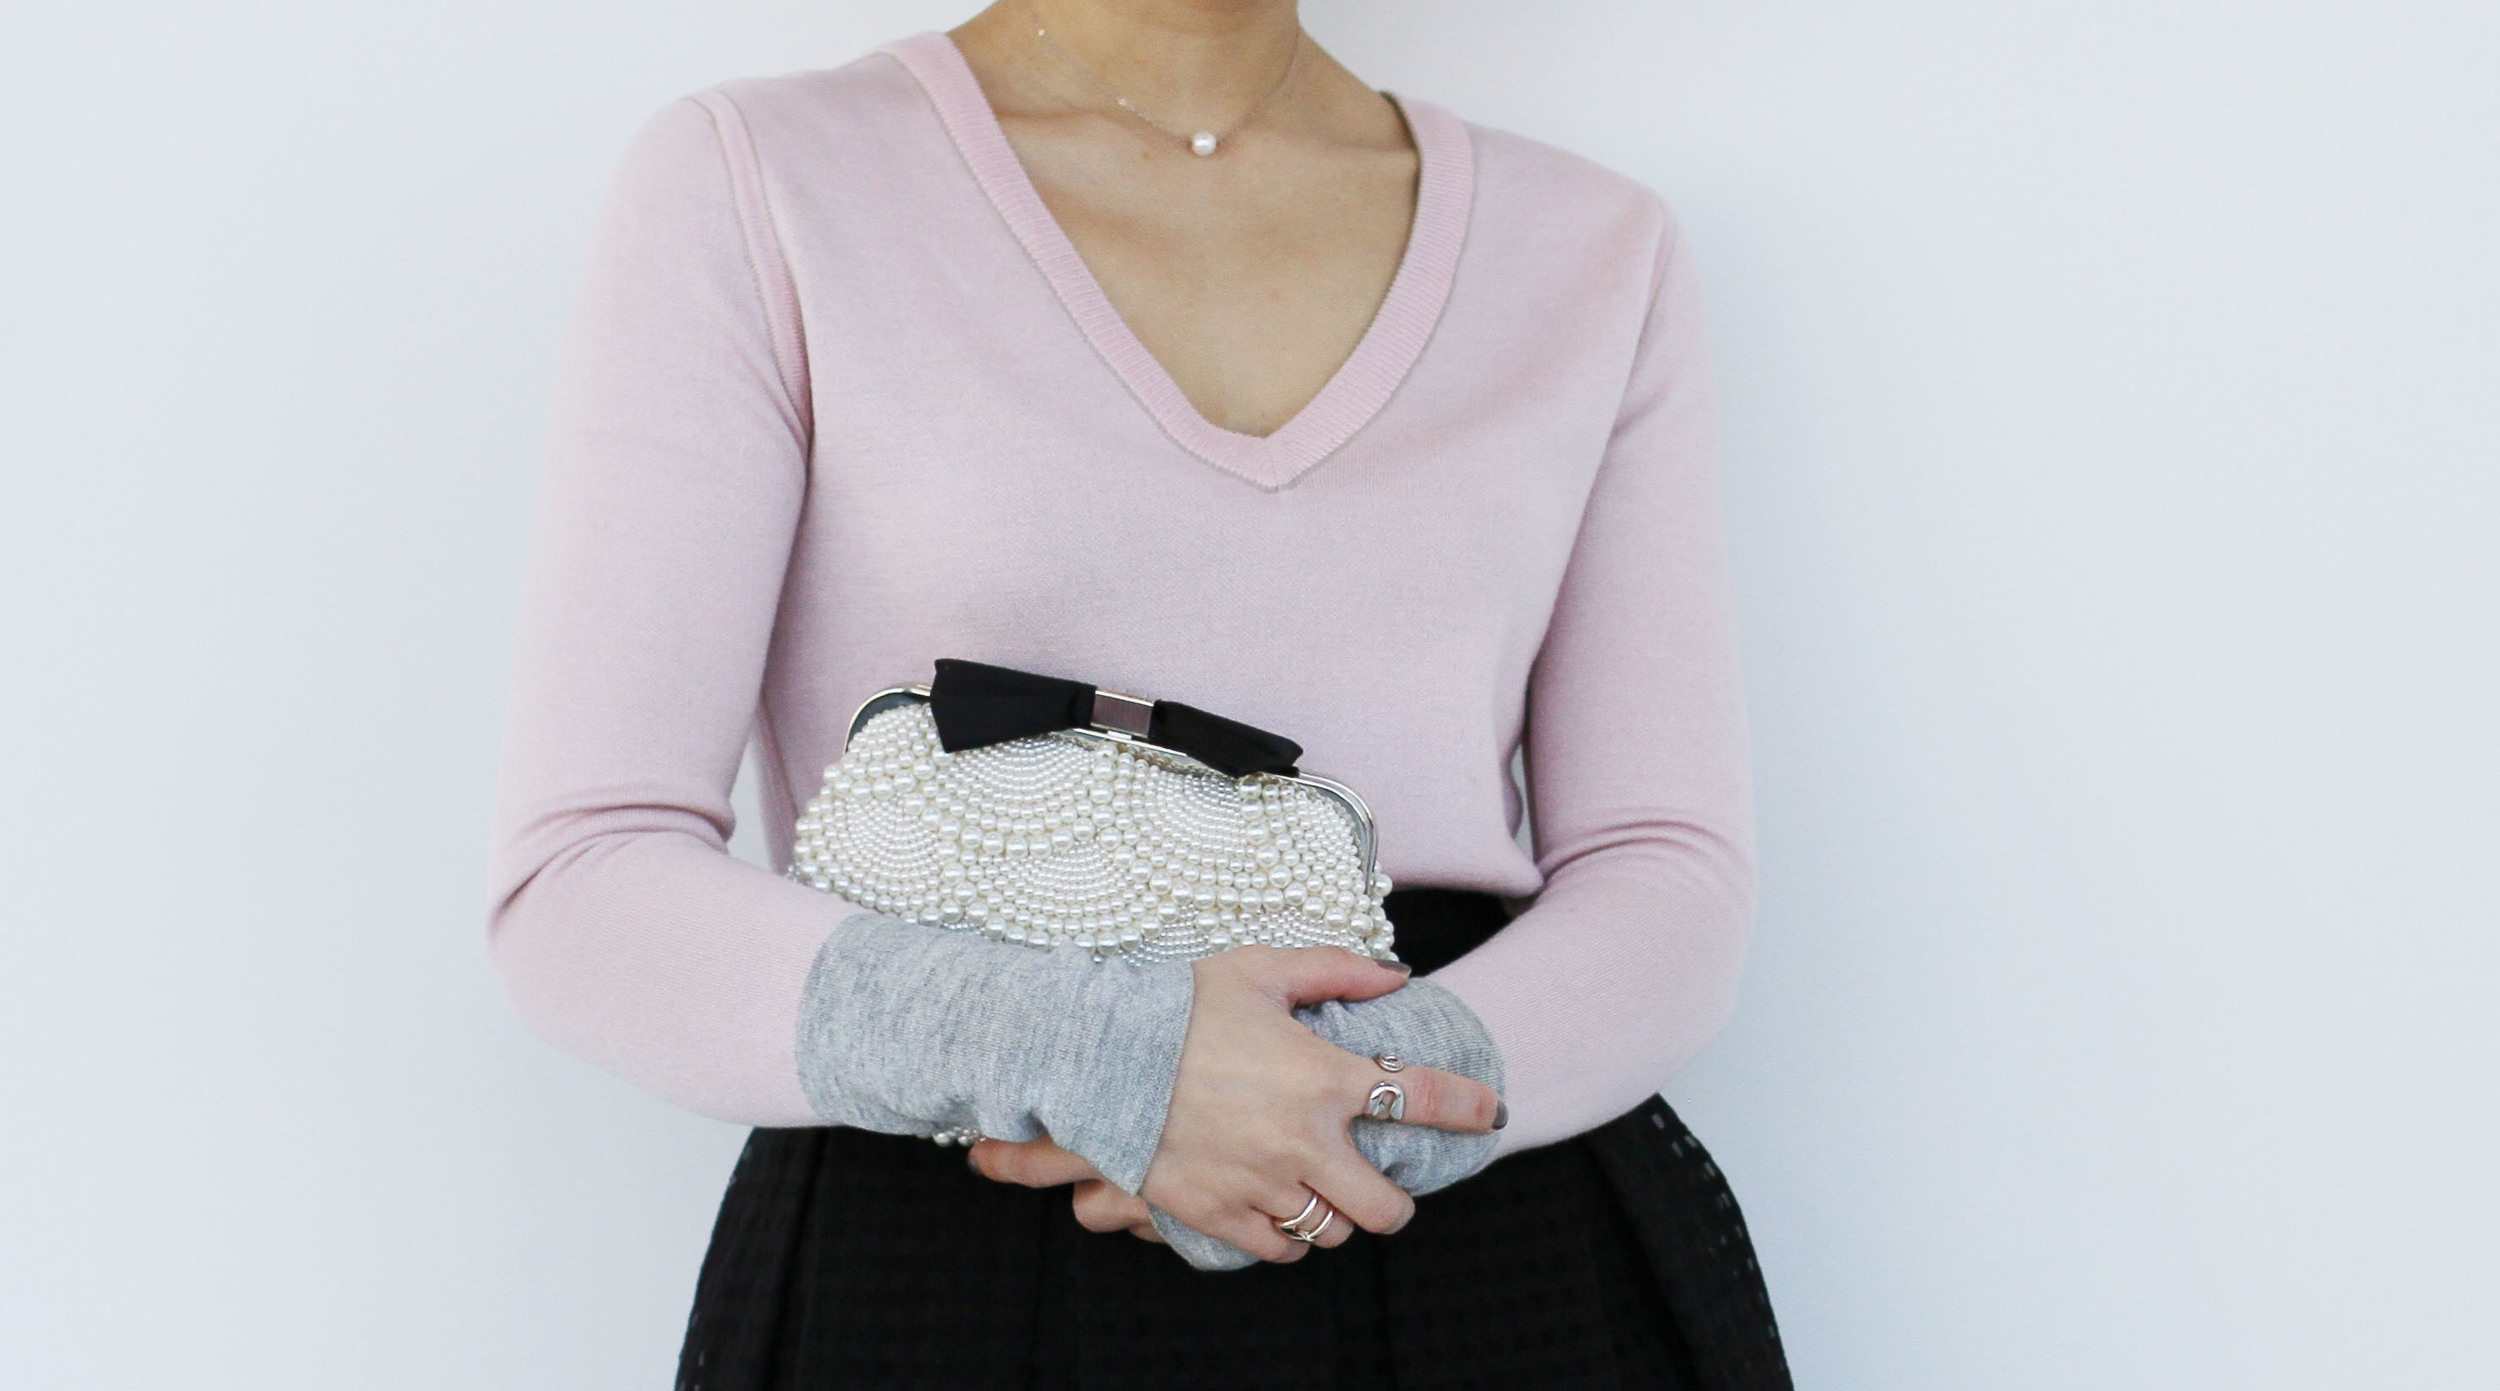 jia collection Reversible sweater8.JPG